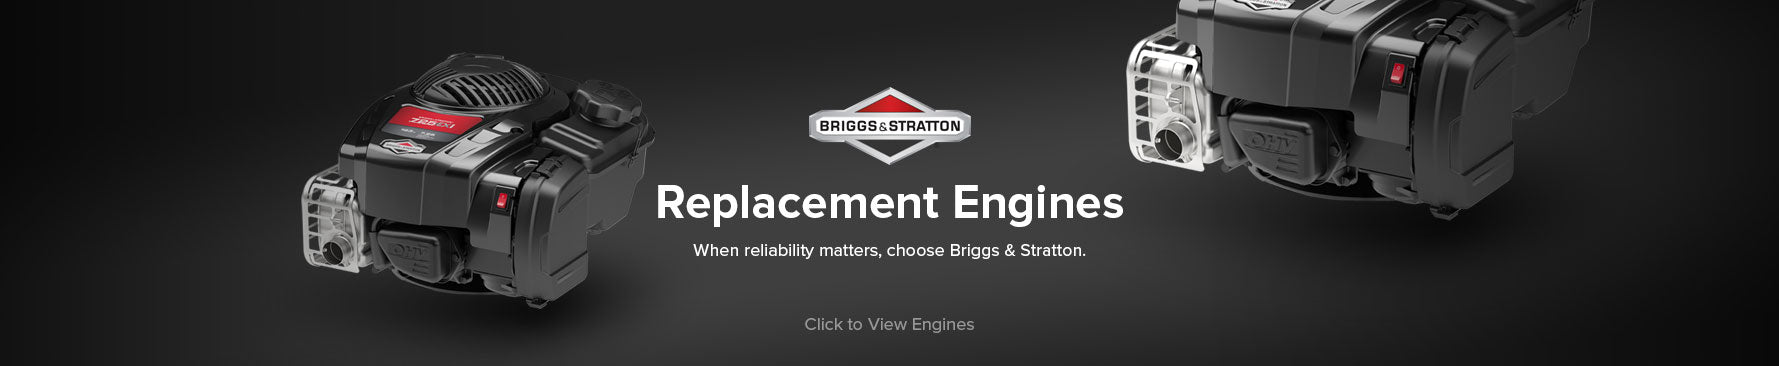 When reliability matters, choose Briggs & Stratton for your replacement engine.